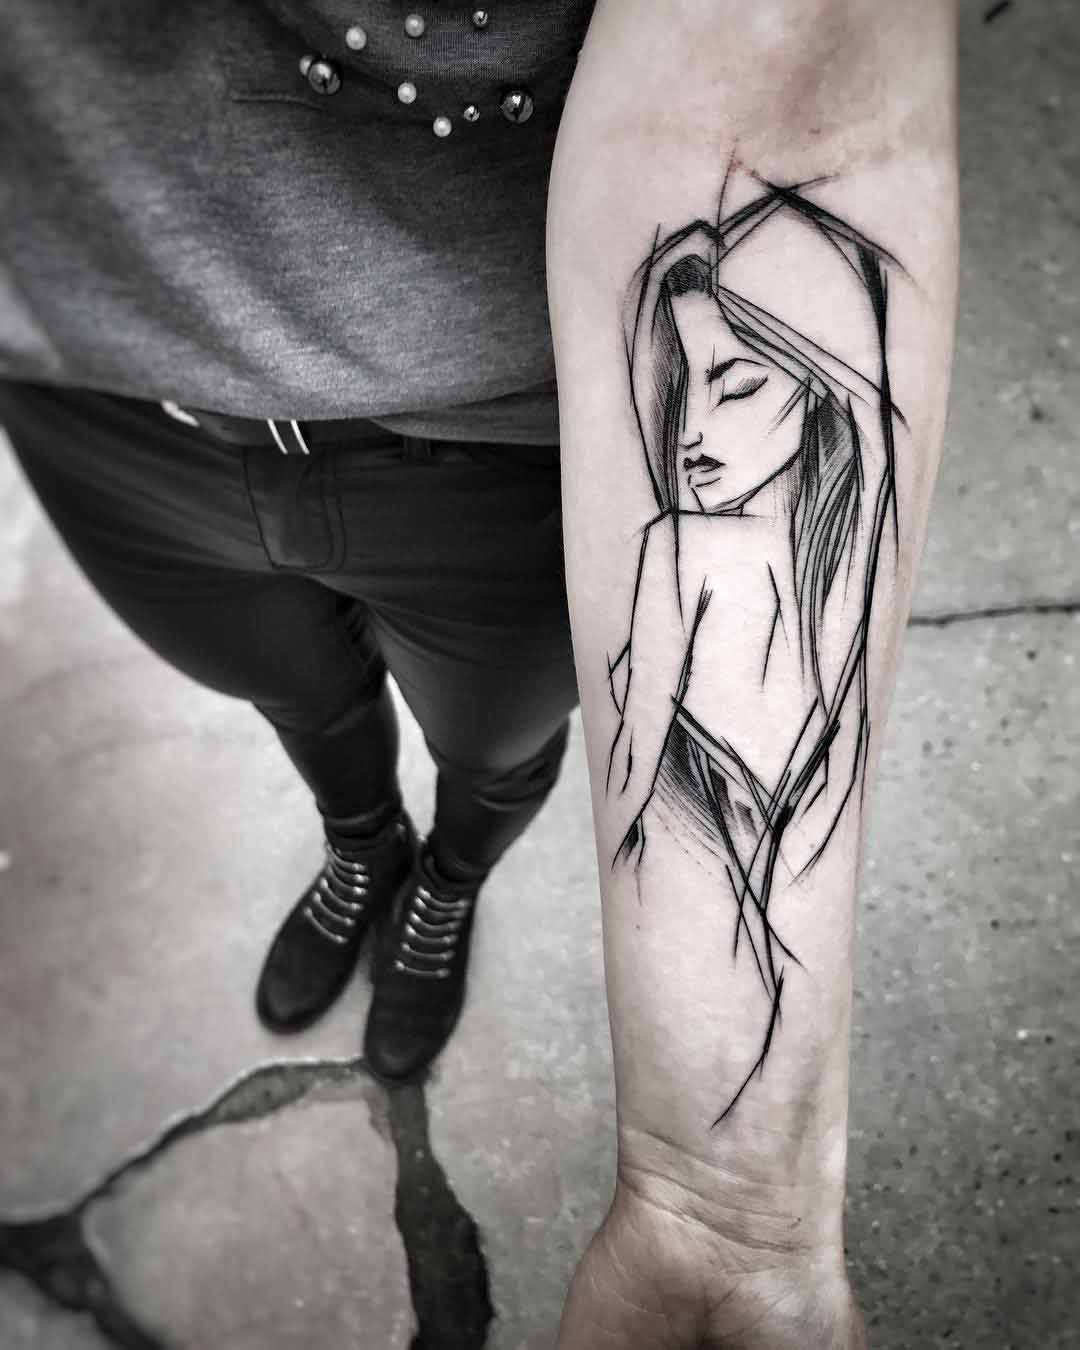 girl sketch tattoo on arm